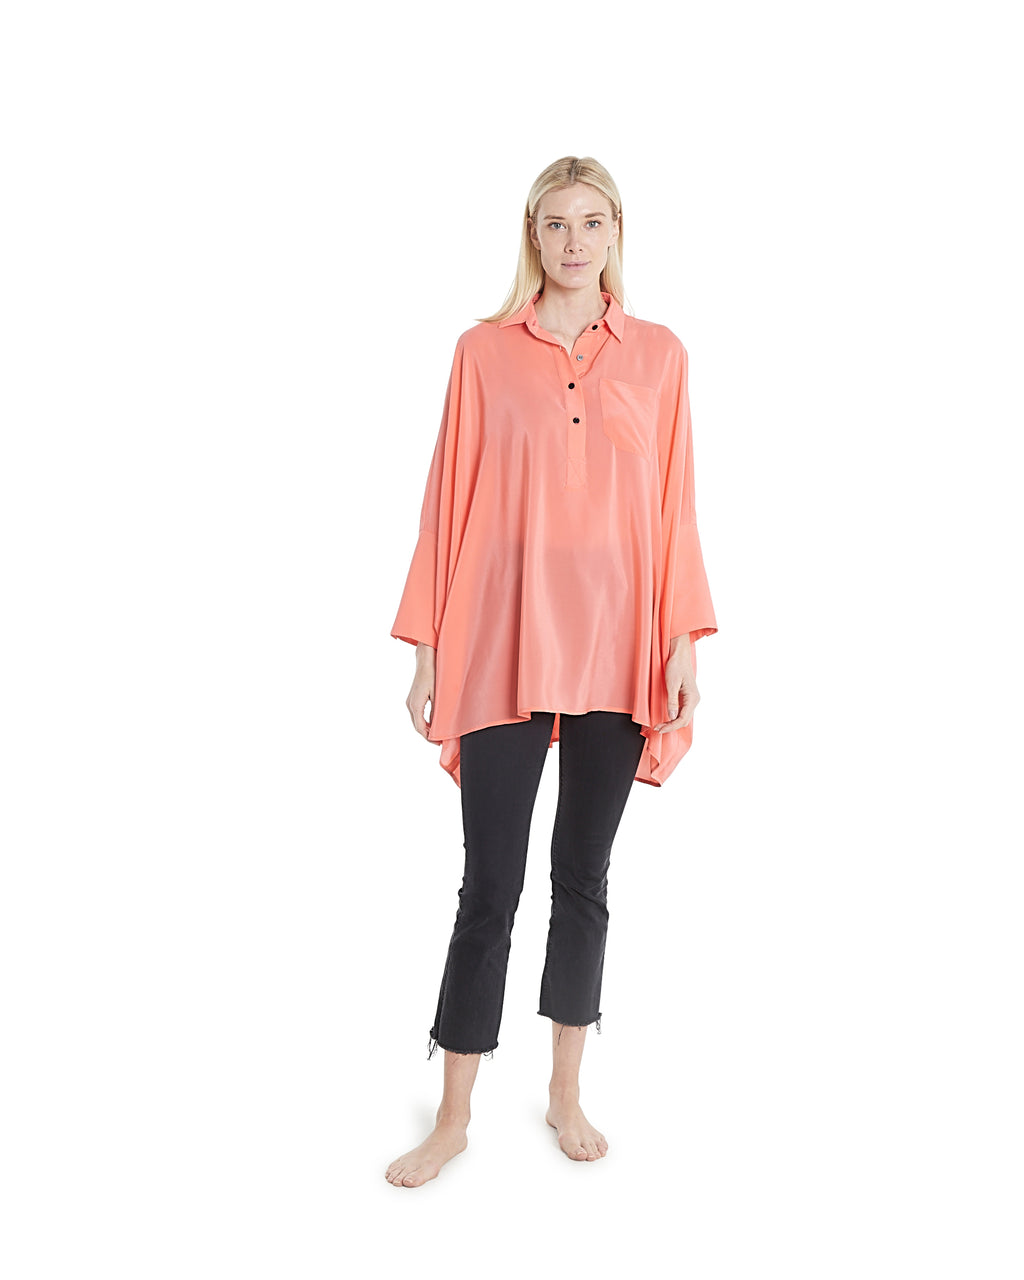 no. 1025 Orange oversized button down shirt